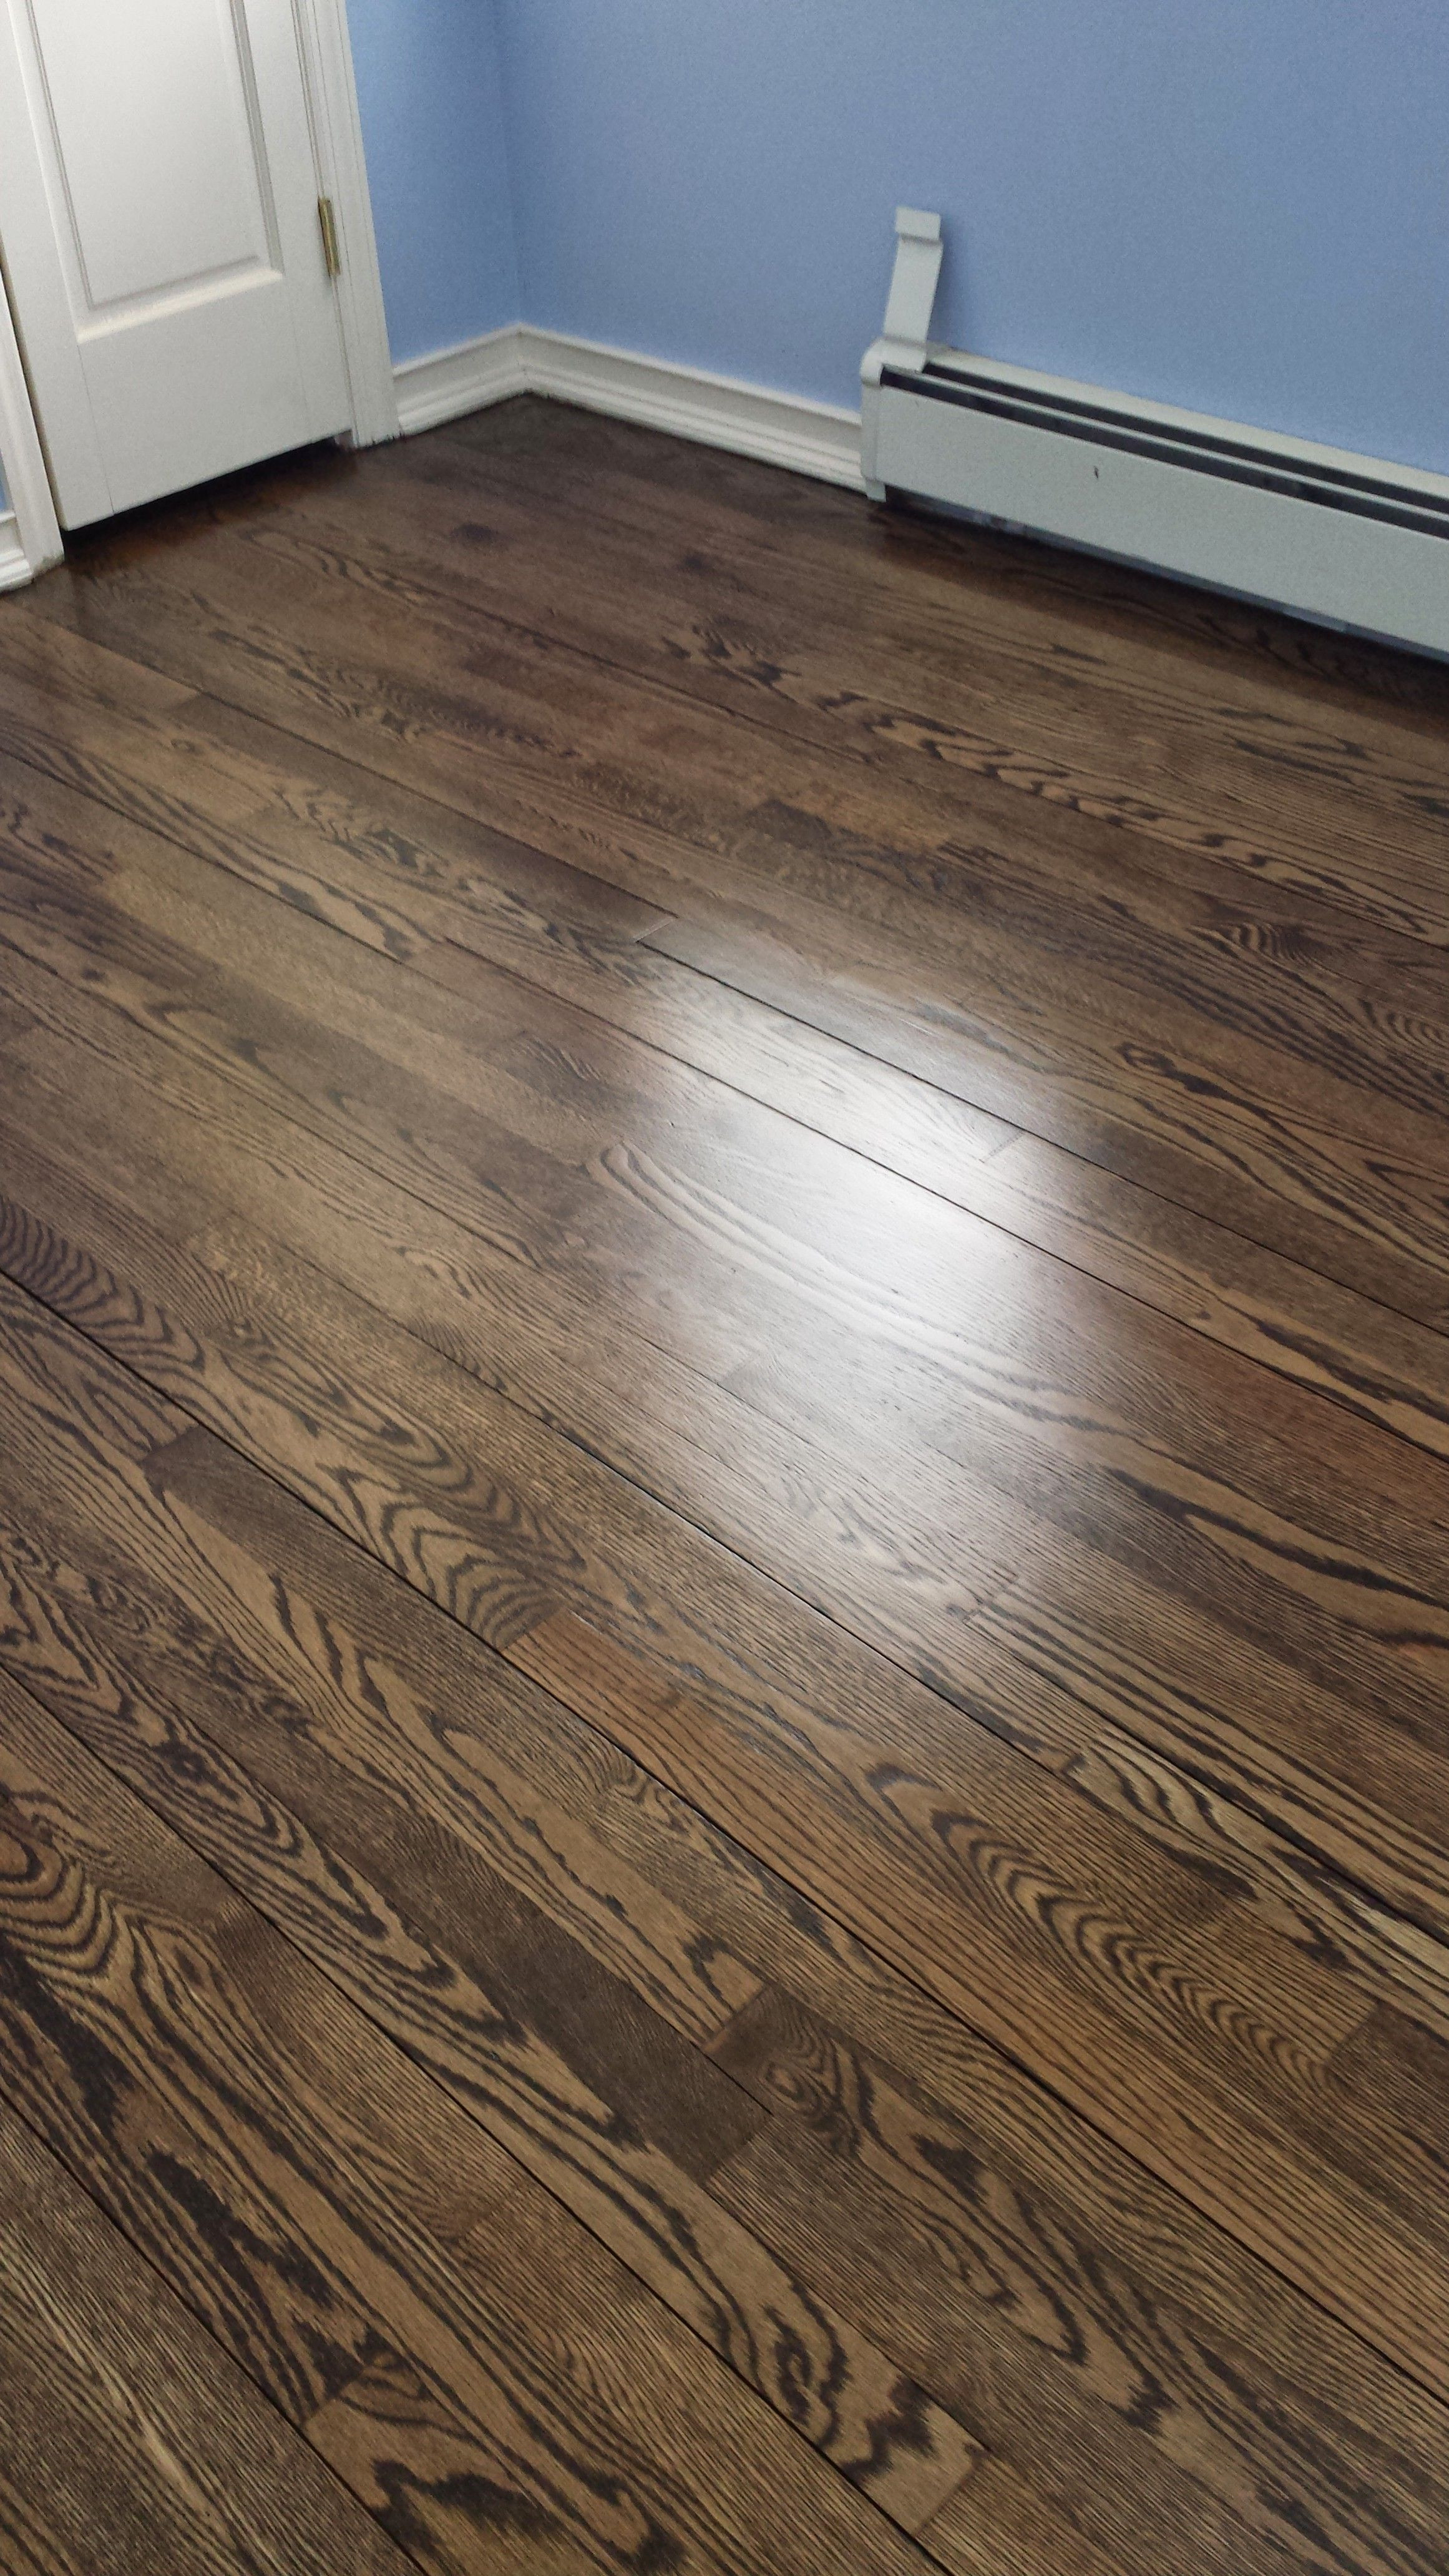 16 Nice Average Cost to Restain Hardwood Floors 2021 free download average cost to restain hardwood floors of how much to refinish wood floors great methods to use for within how much to refinish wood floors great methods to use for refinishing hardwood flo